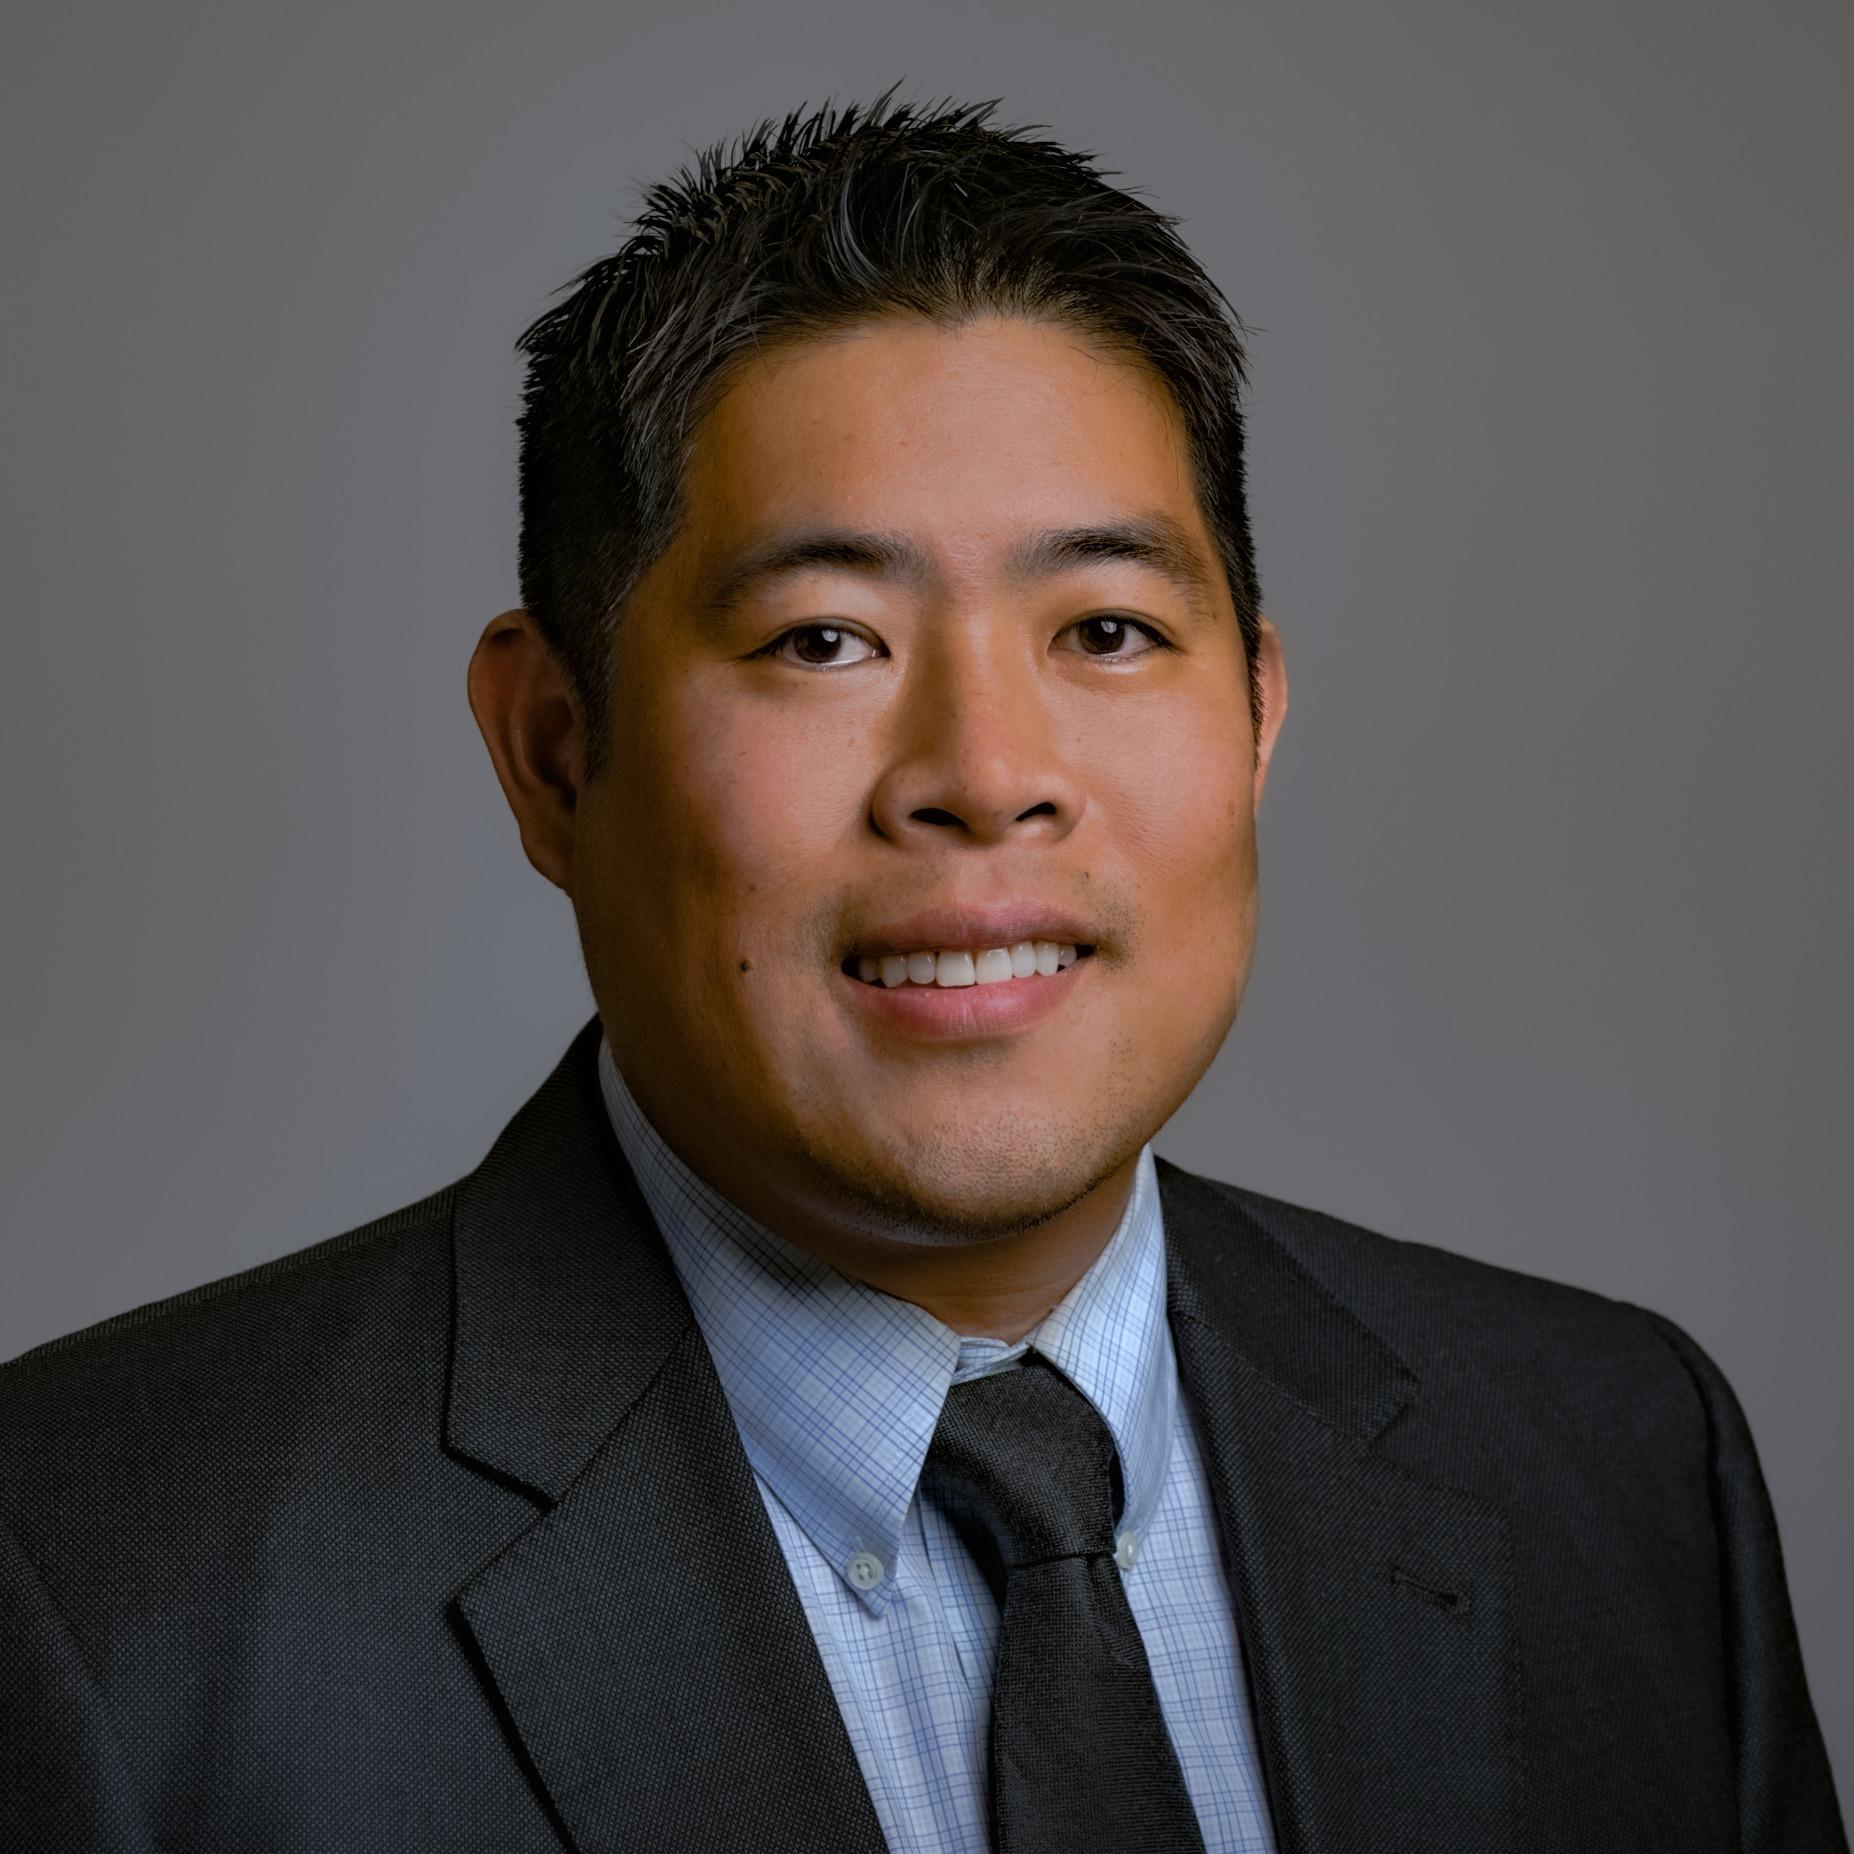 Headshot photo of Joseph S Tan, DDS